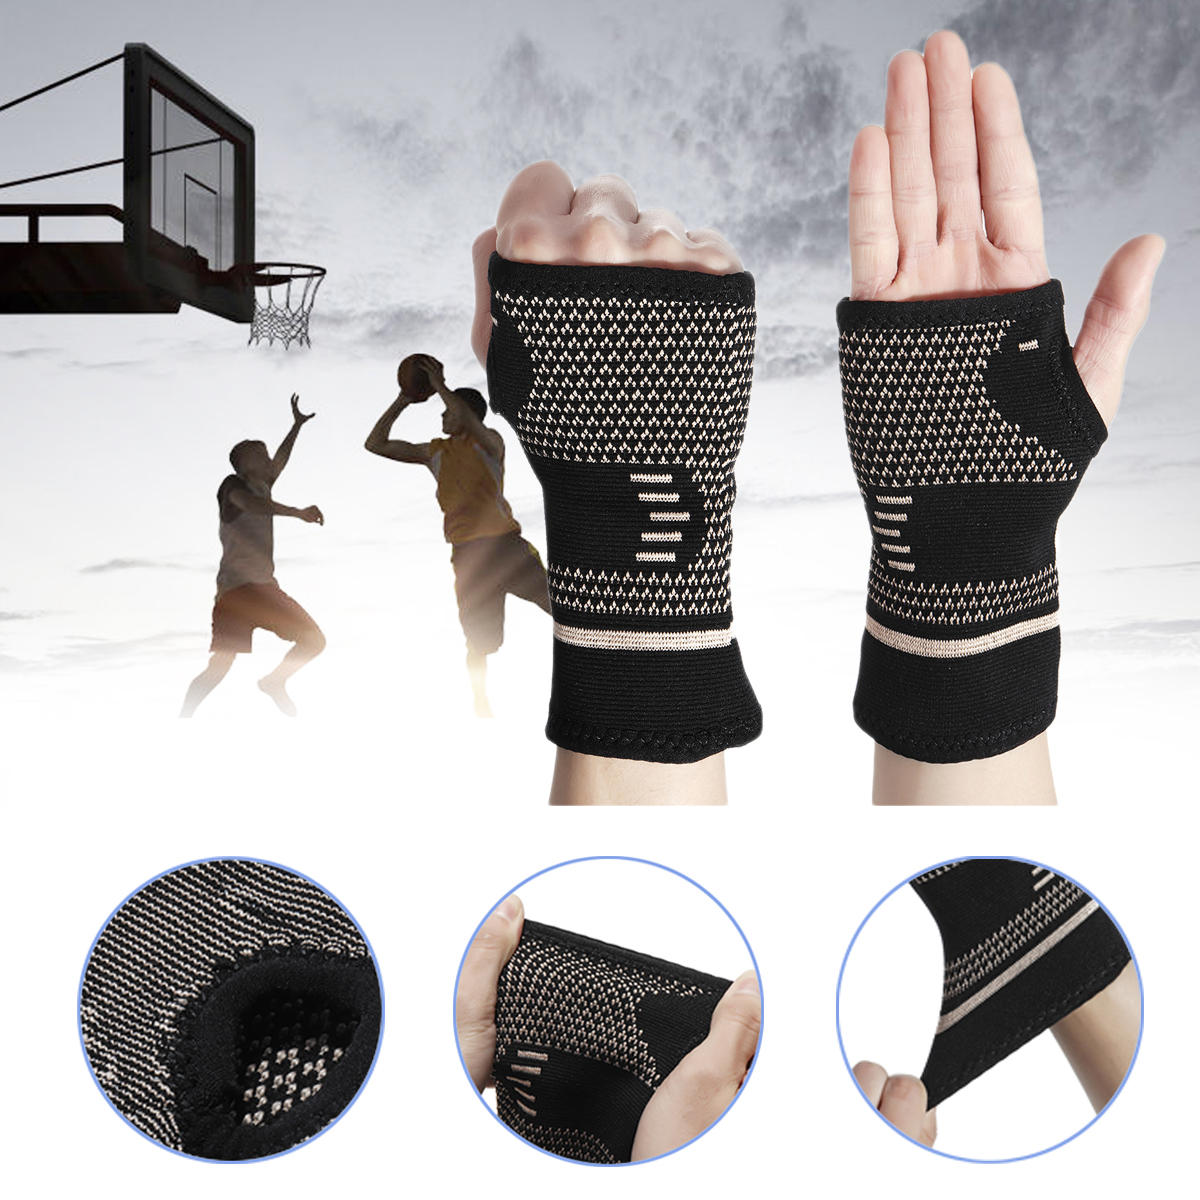 KALOAD 1PC Copper Infused Wrist Sleeve Palm Hand Support Outdoor Sports Bracer Support Fitness Protective Gear